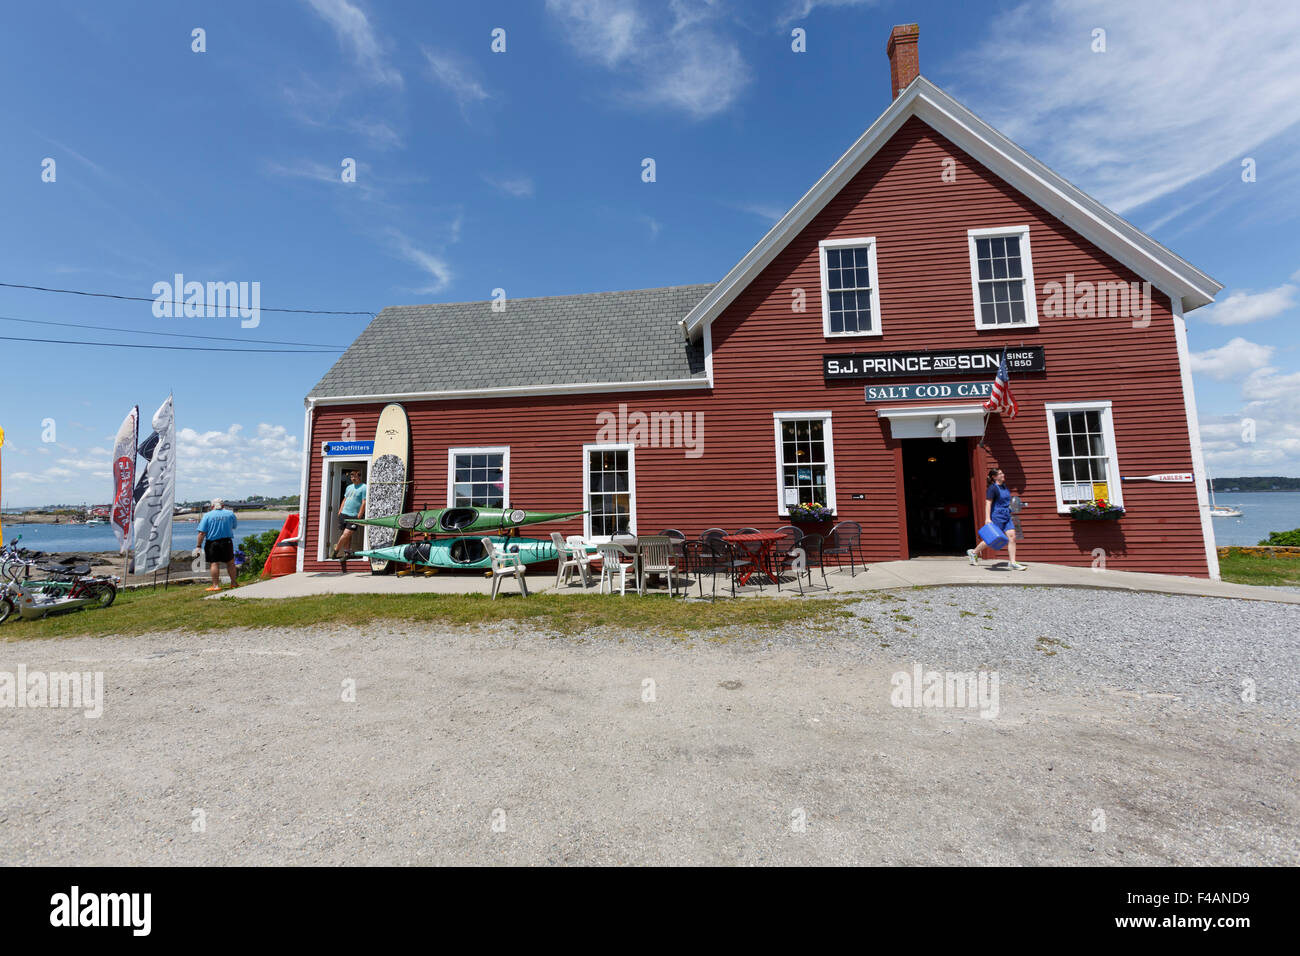 The old wooden S.J. Prince and Sons Salt Cod Cafe, store with kayak hire, Neck Rd on Orr's Island Harpswell - Stock Image